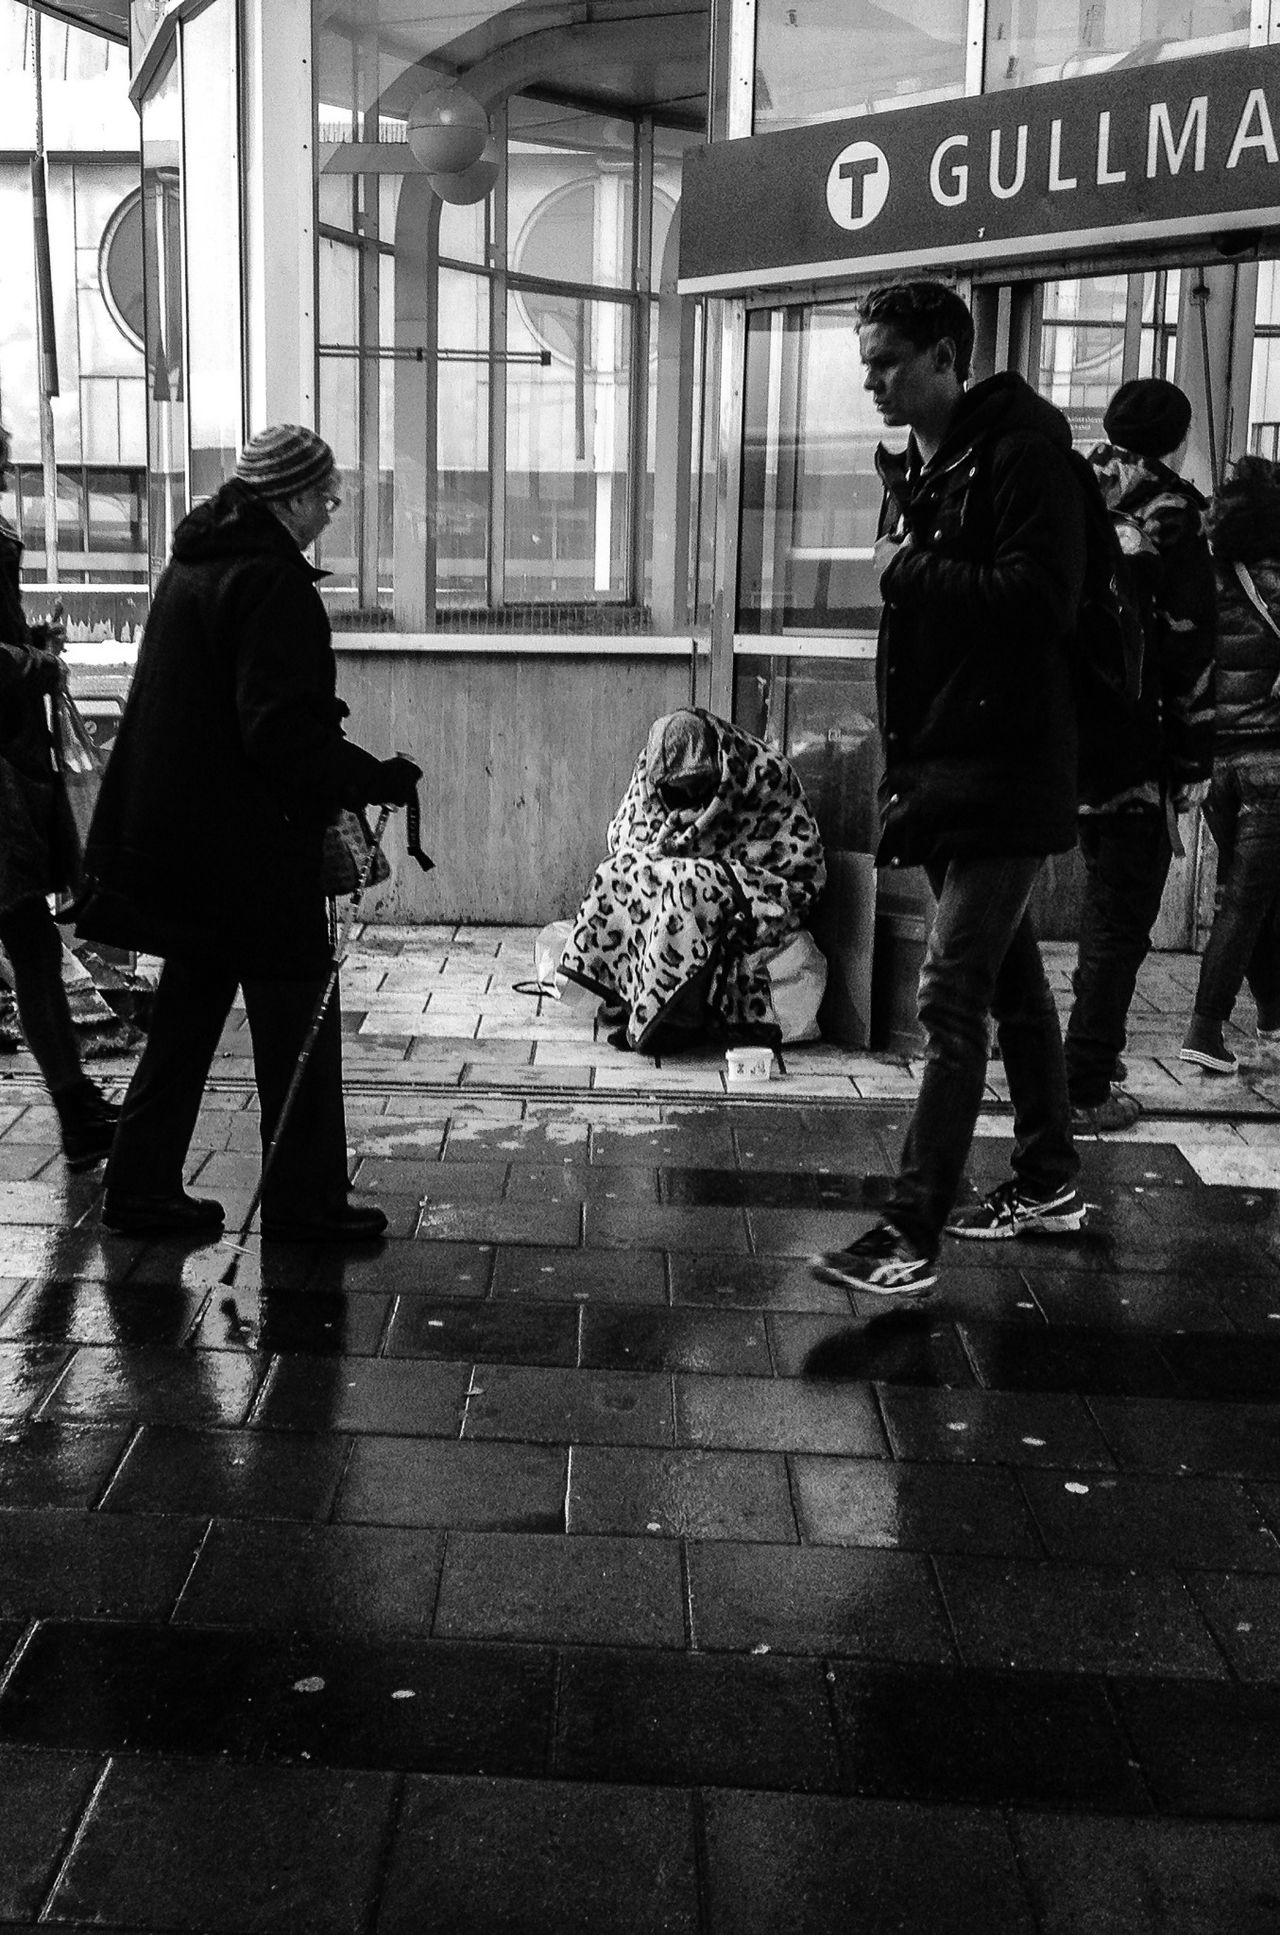 Begging in the snow Human Interest Gullmarsplan Stockholm Black And White